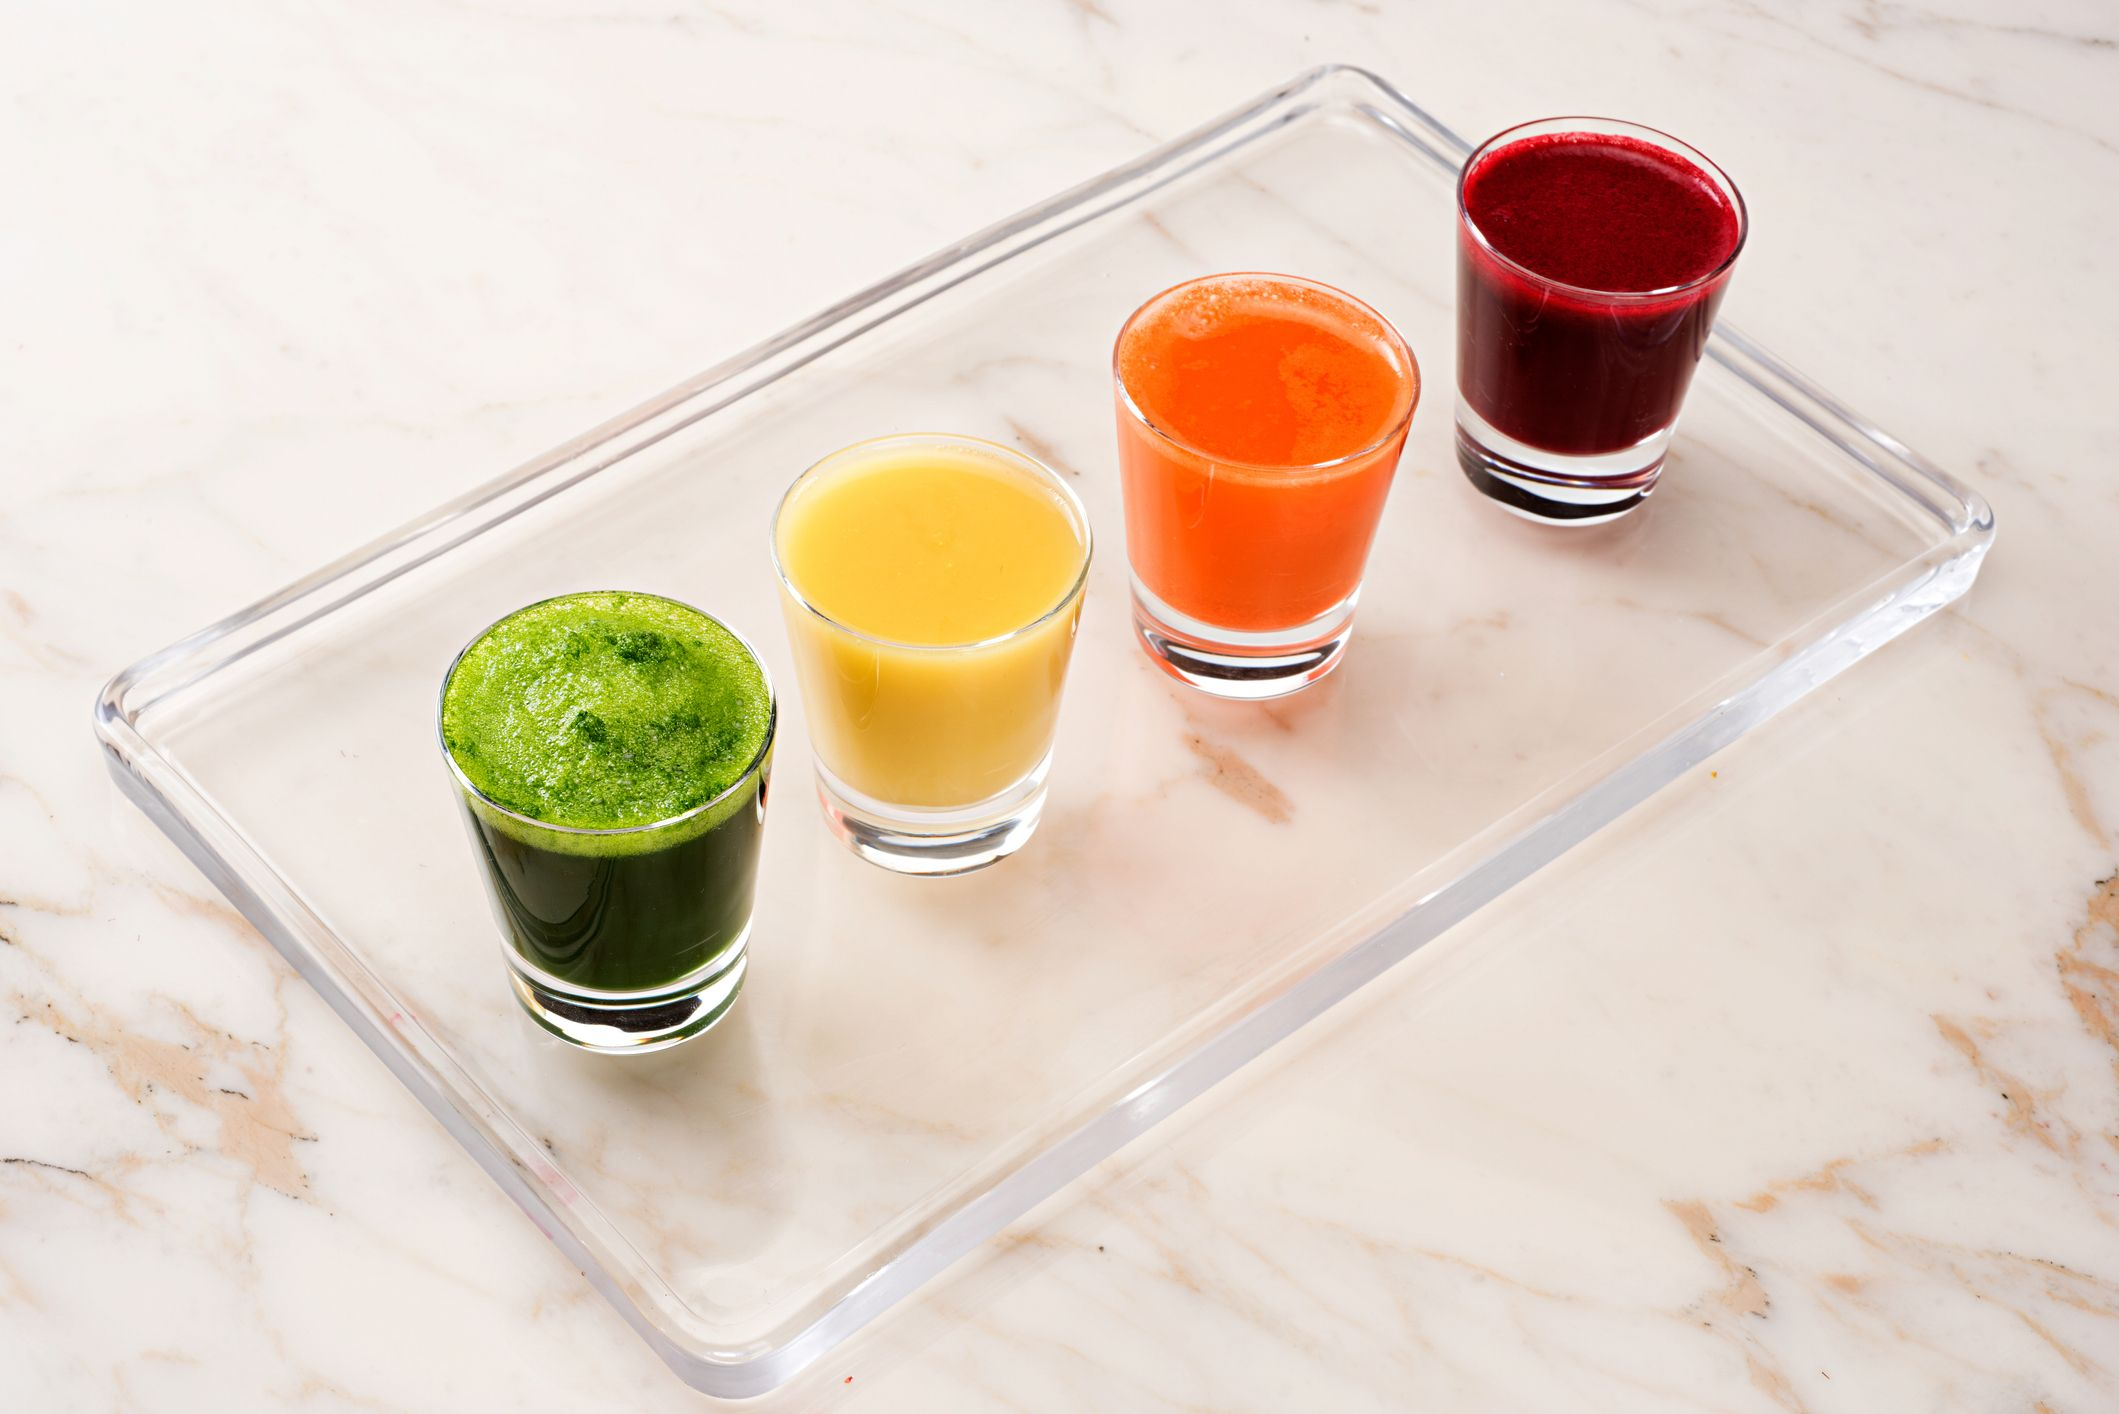 Are Wellness Shots With Turmeric, Ginger, Or ACV Actually Good For You? An RD Weighs In